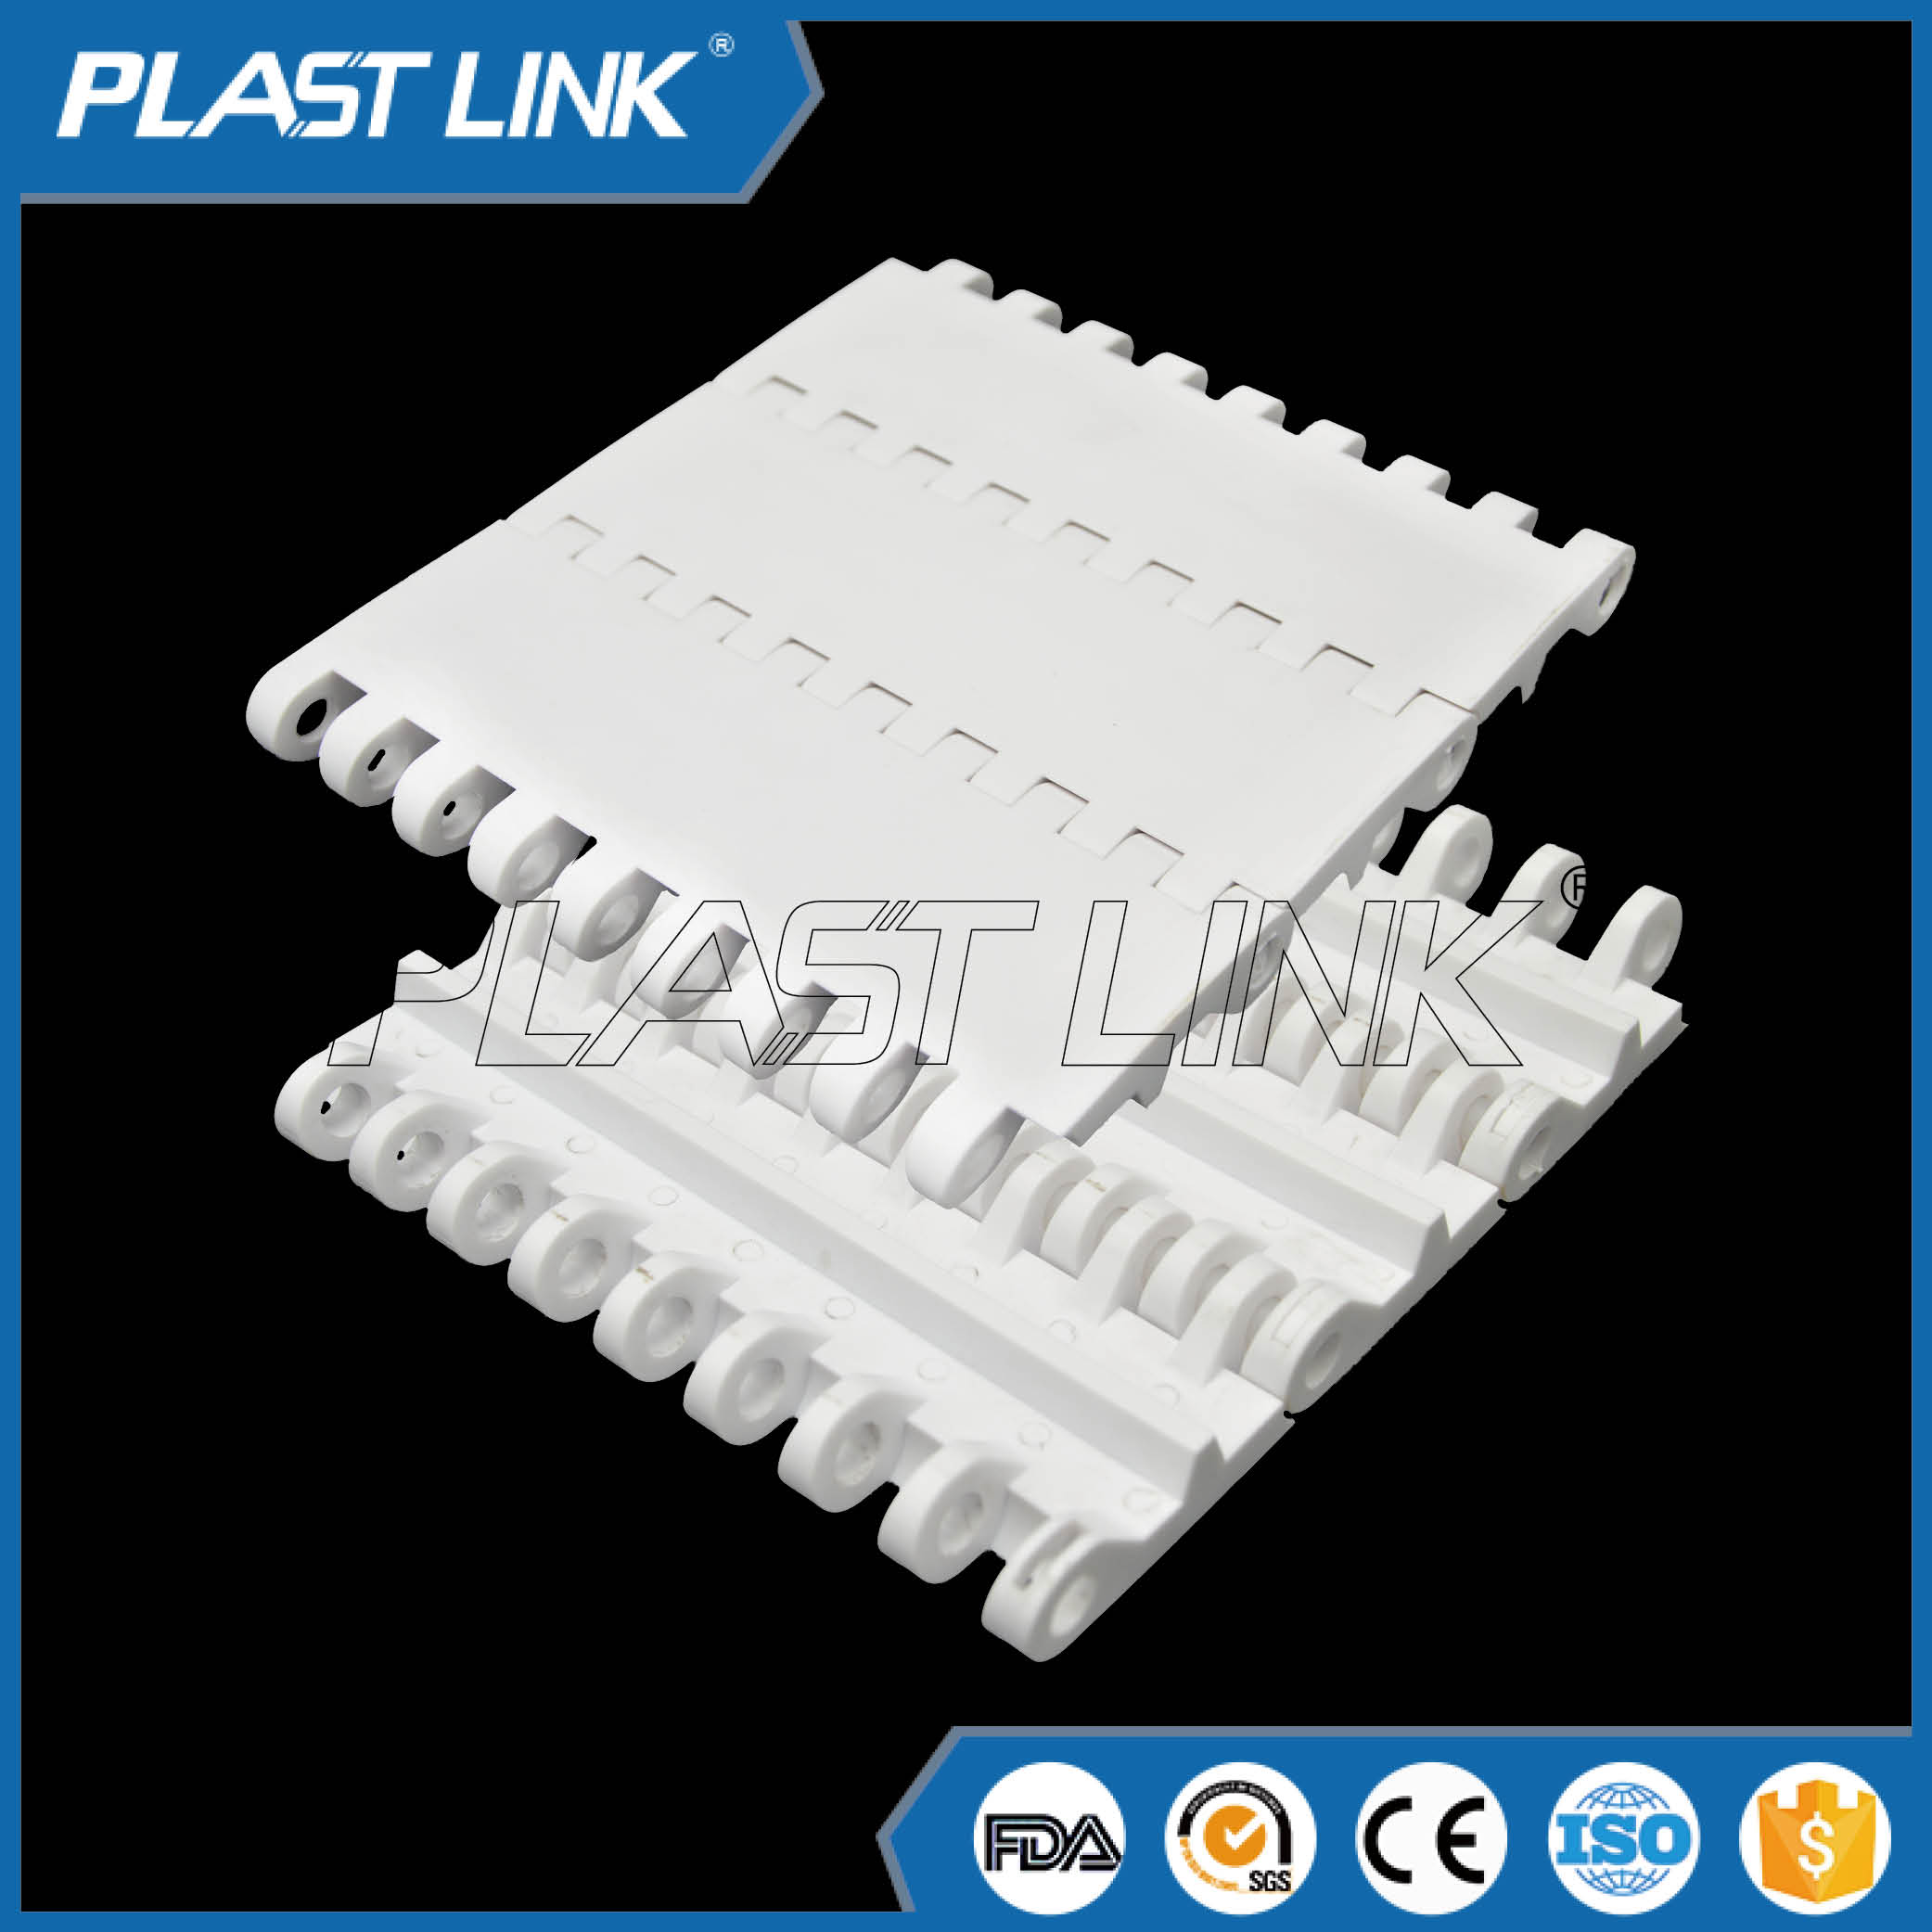 PlastLink 800modular conveyor belt made in chain